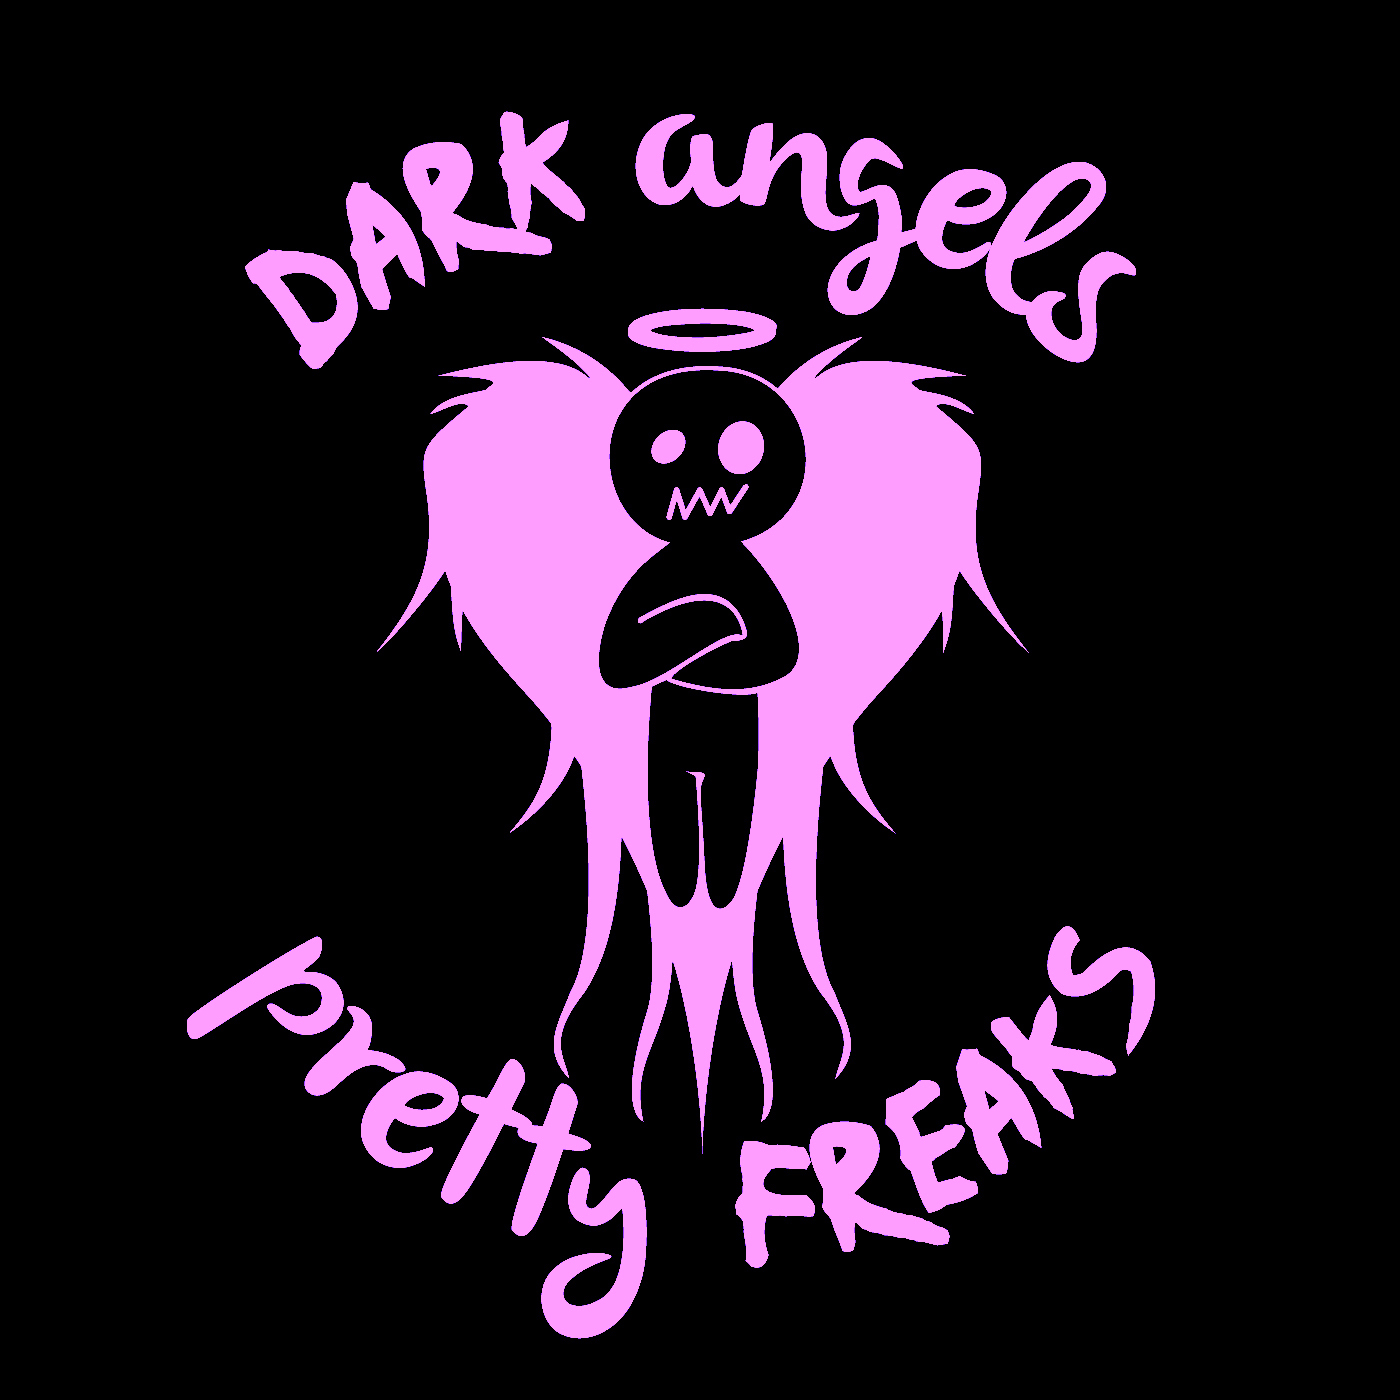 Artwork for DAPF #110. Dark Angels & Pretty Freaks #110. We are a little all over the place this week. Shocking, huh? We talk B-days, Weed pulling, puppy meet ups, Vajizzle, wind, 5 TV shows we would like a guest spot on and so much more!